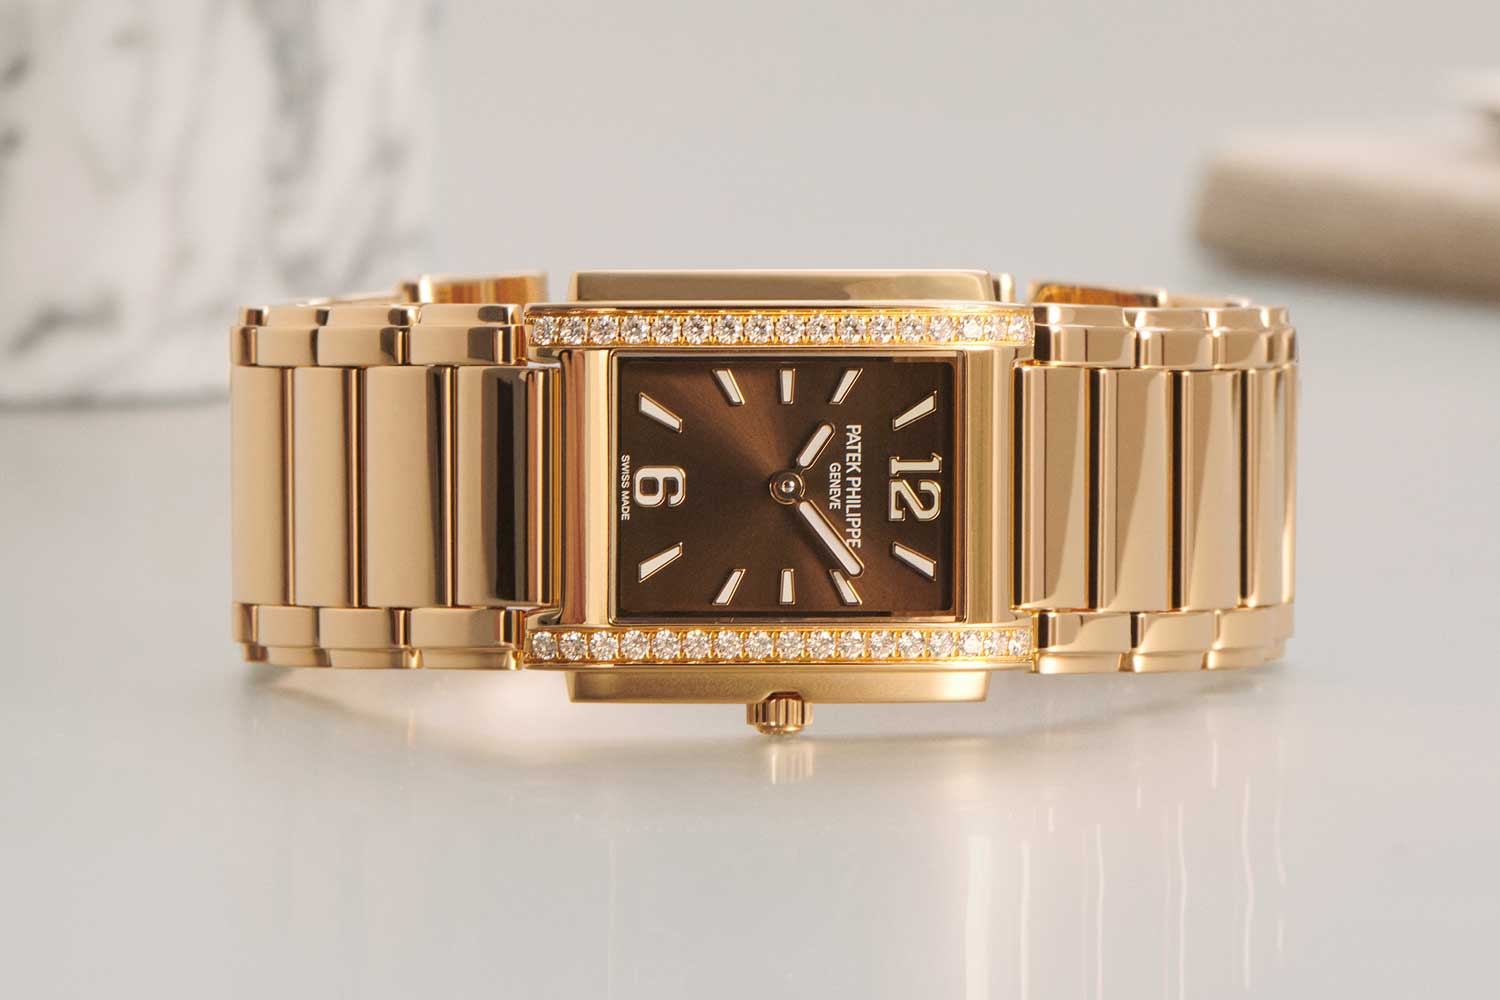 """The """"manchette"""" style model features a streamlined, 33 mm rectangular case in 18K rose-gold."""